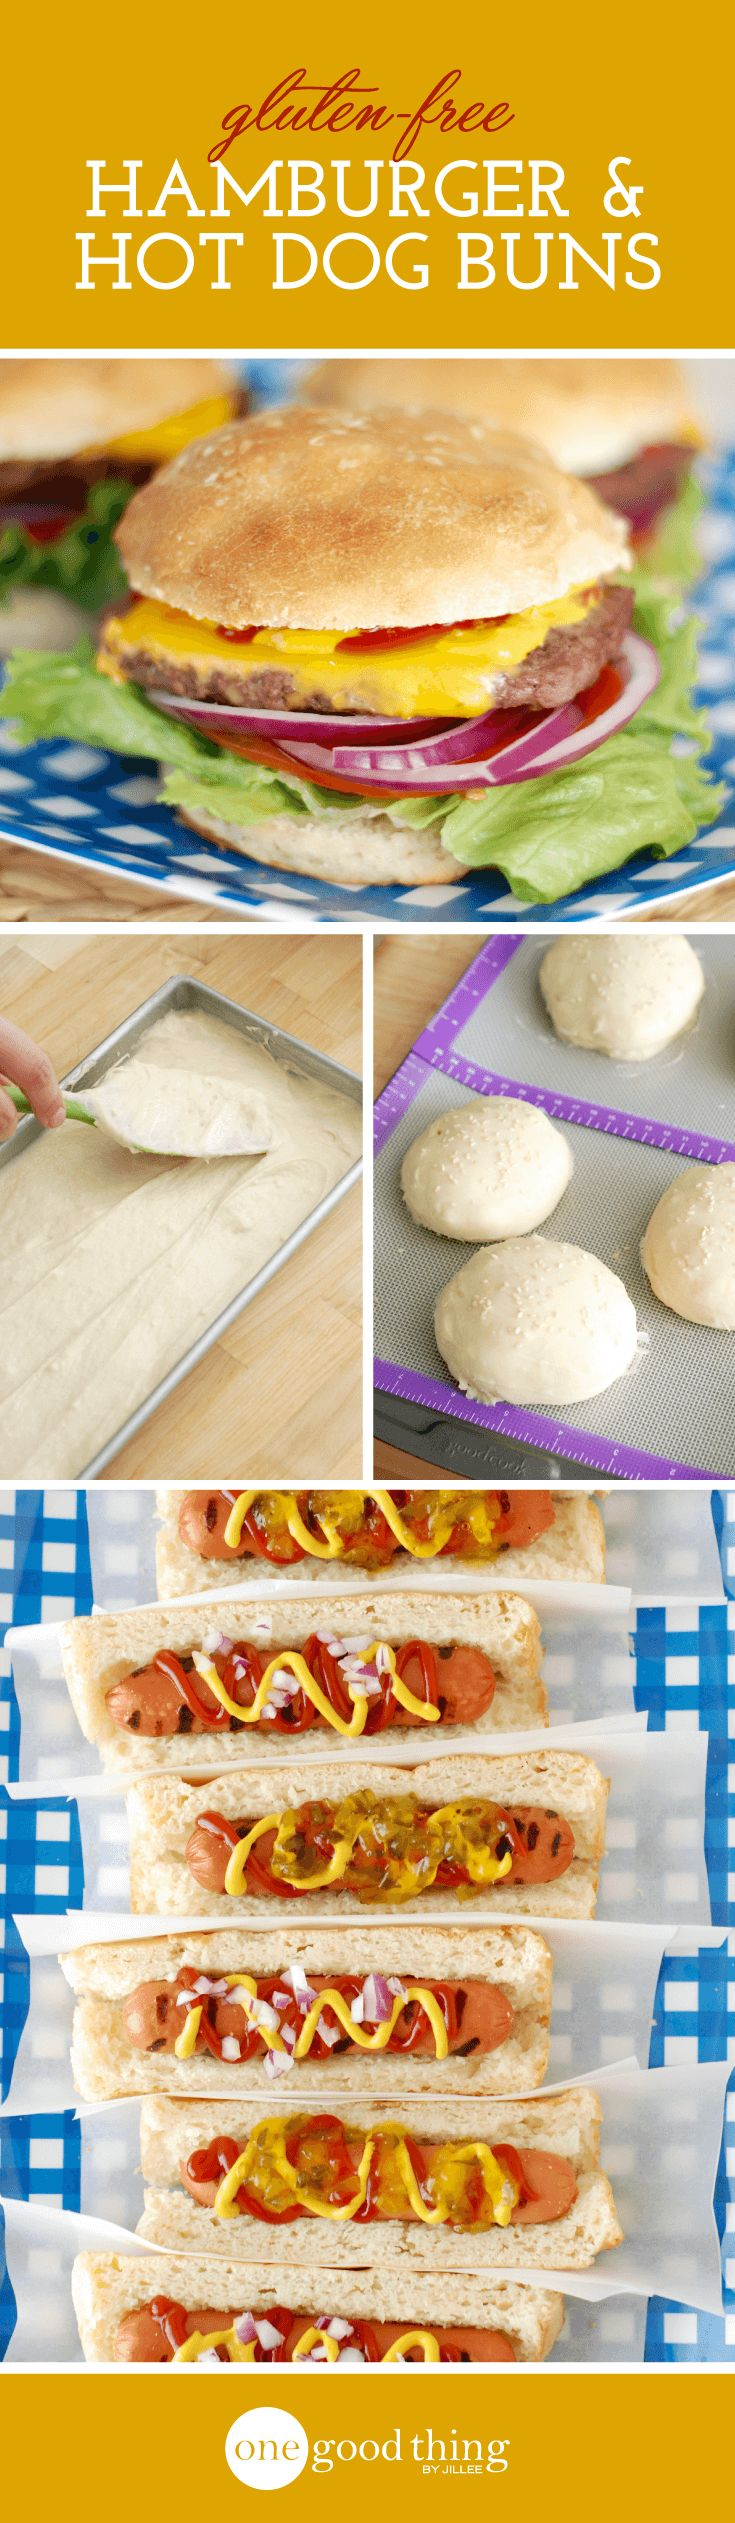 How to Make Delicious Gluten-Free Hamburger and Hot Dog Buns...No, Really! - One Good Thing by Jillee